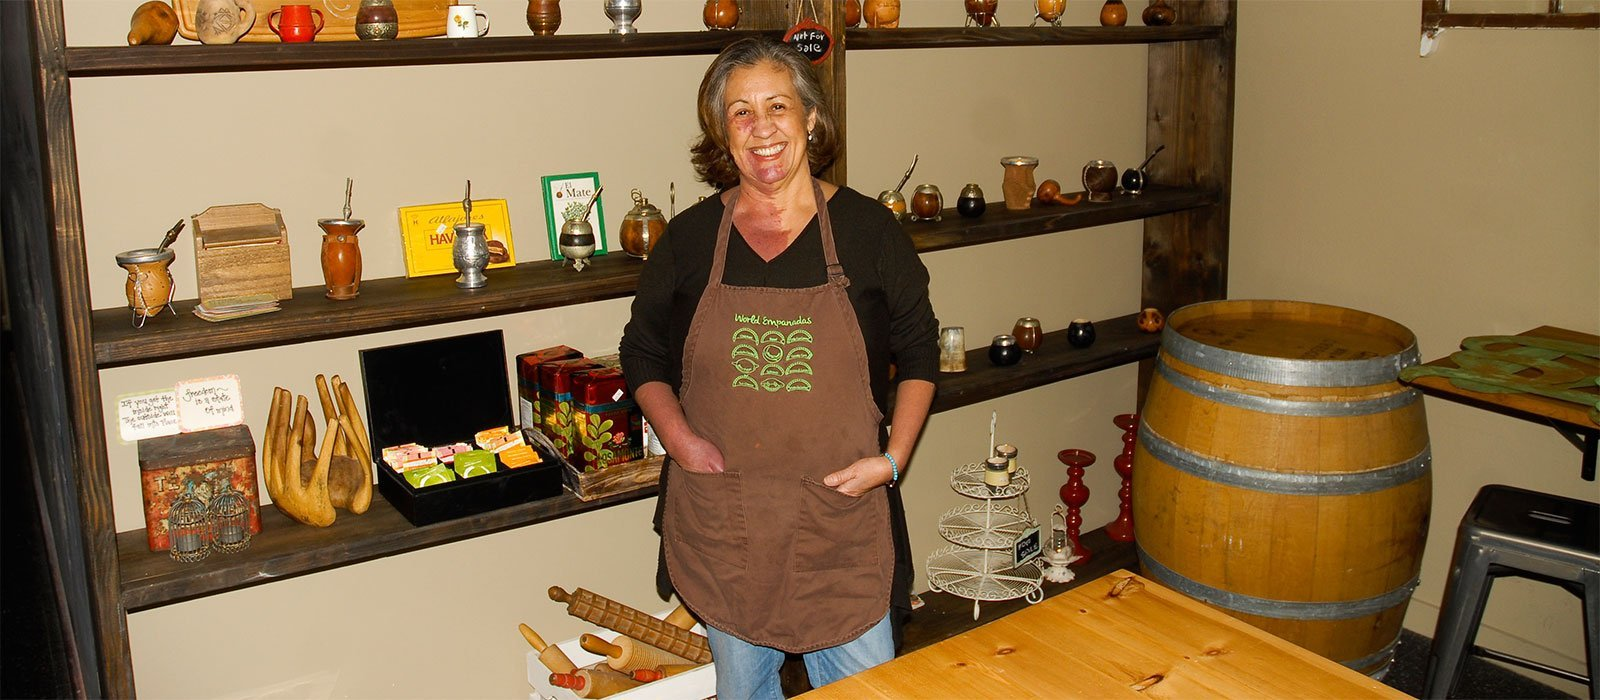 Lia Hirtz, Owner of World Empanadas